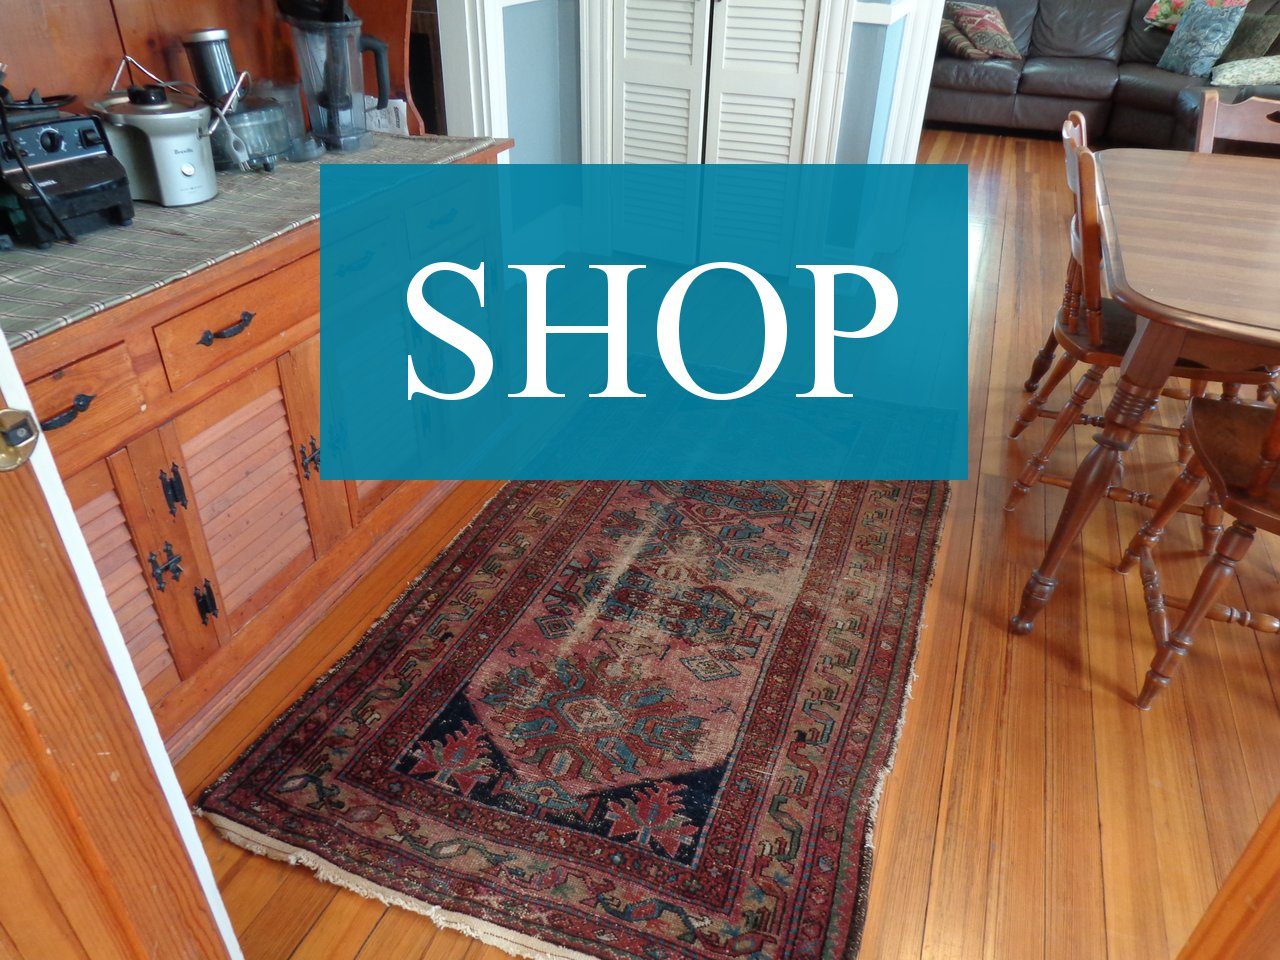 Shop discount Oriental rugs online to style your home